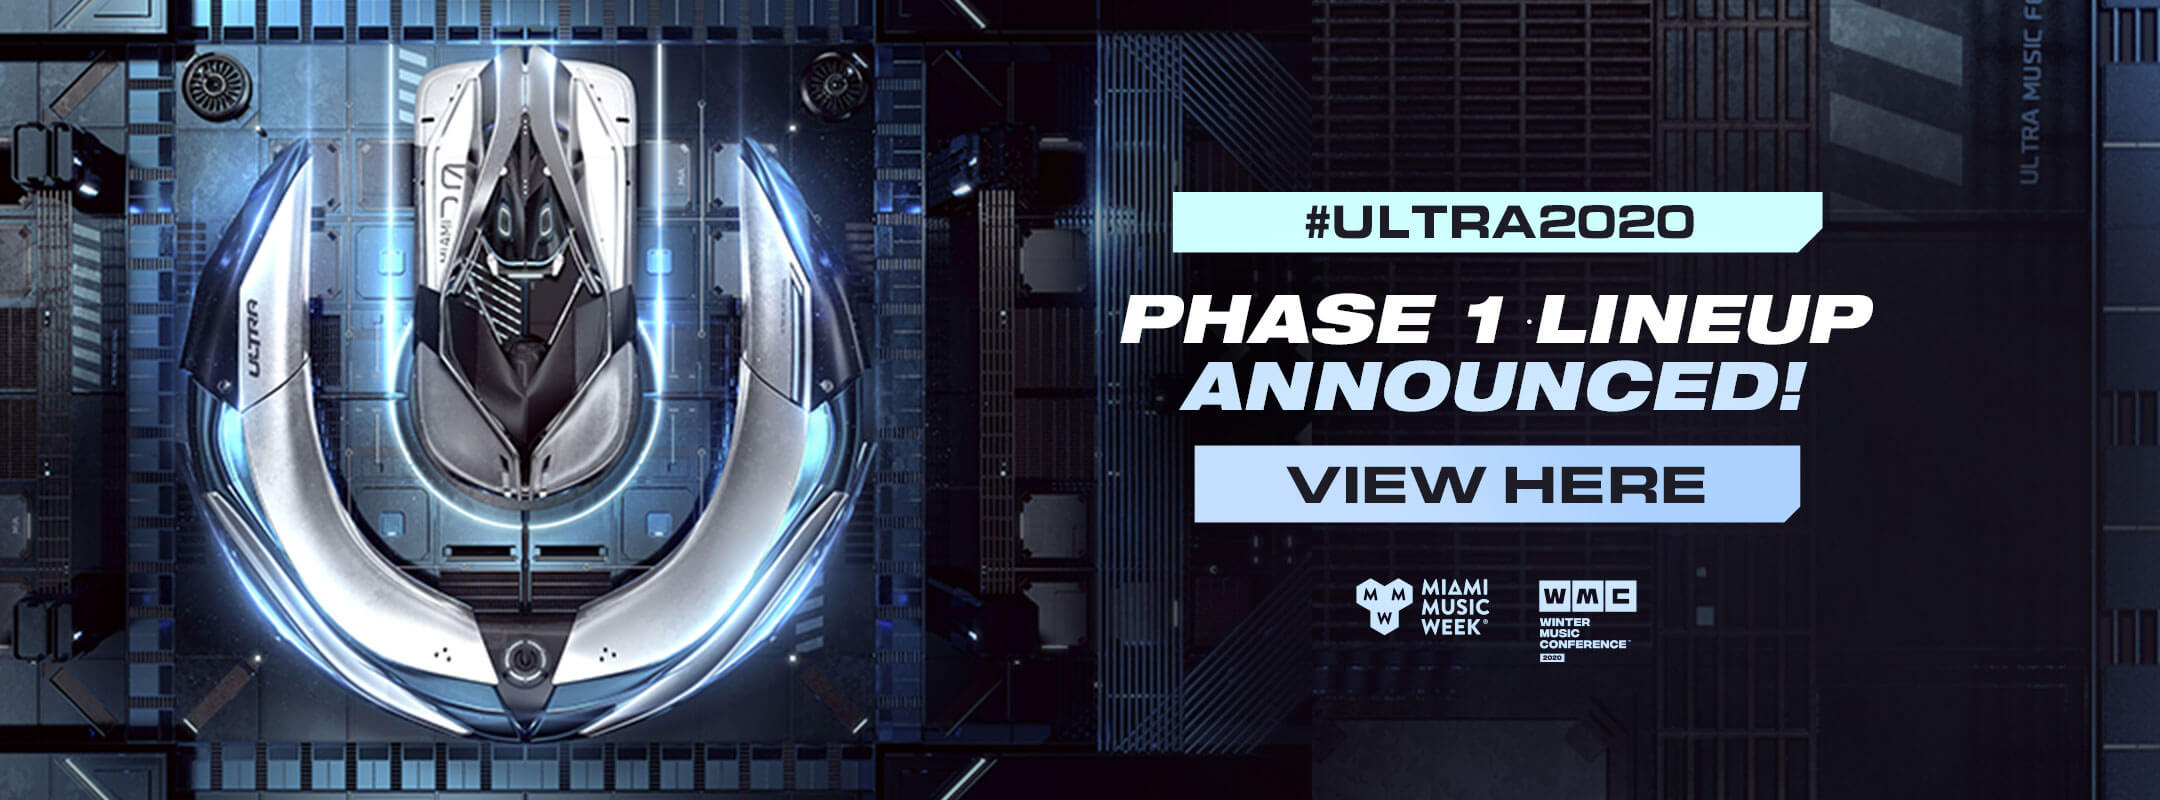 View the Ultra Music Festival 2020 Phase 1 Lineup